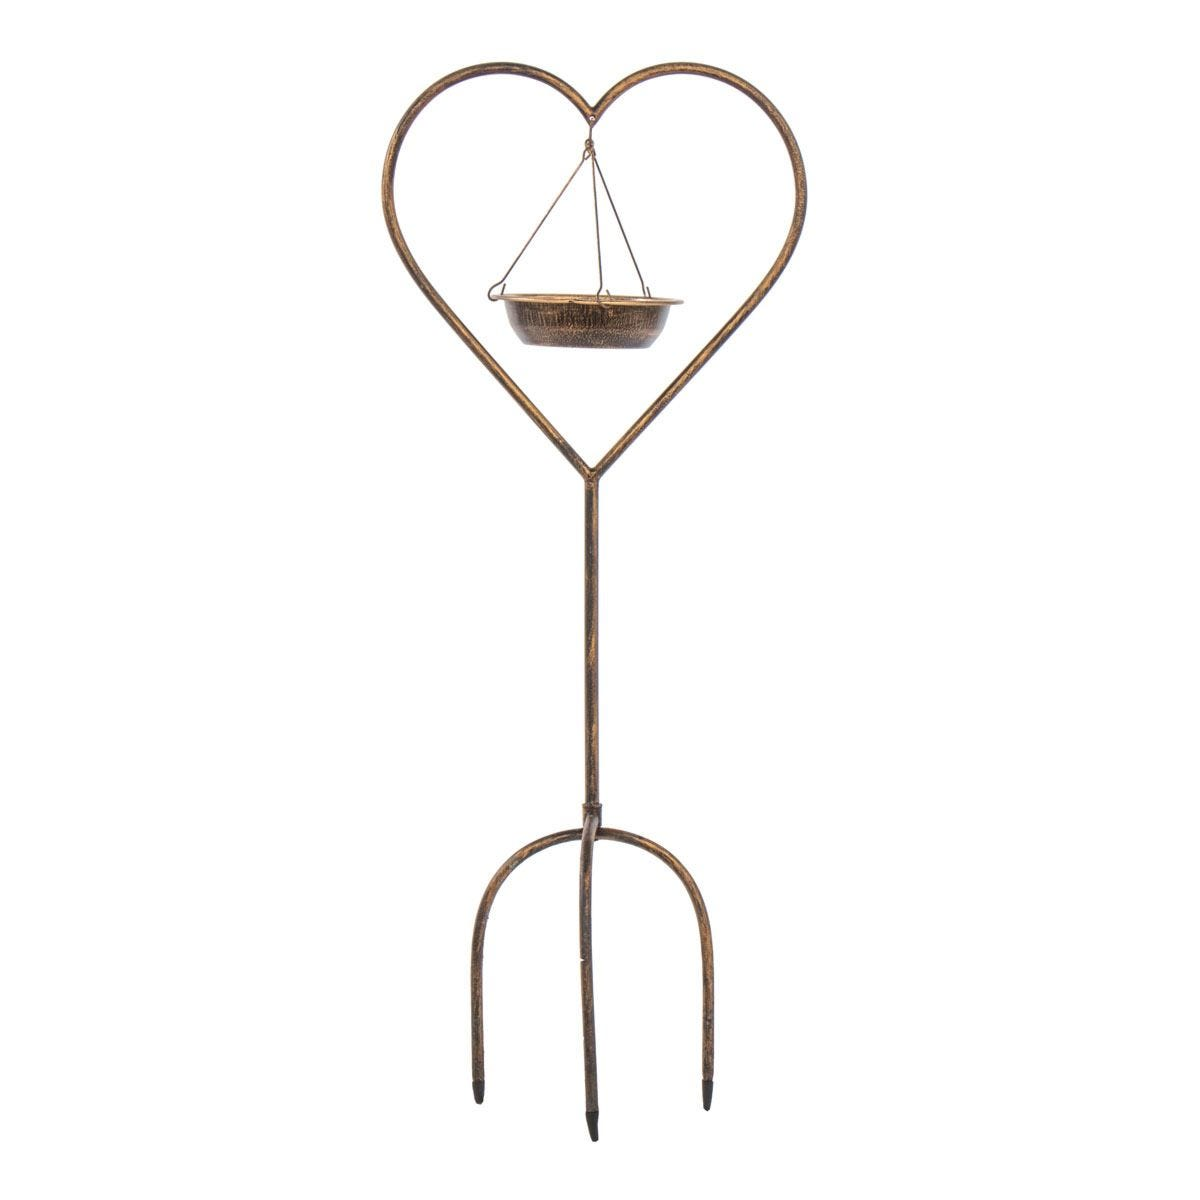 Mansion Garden Heart Bird Feeder